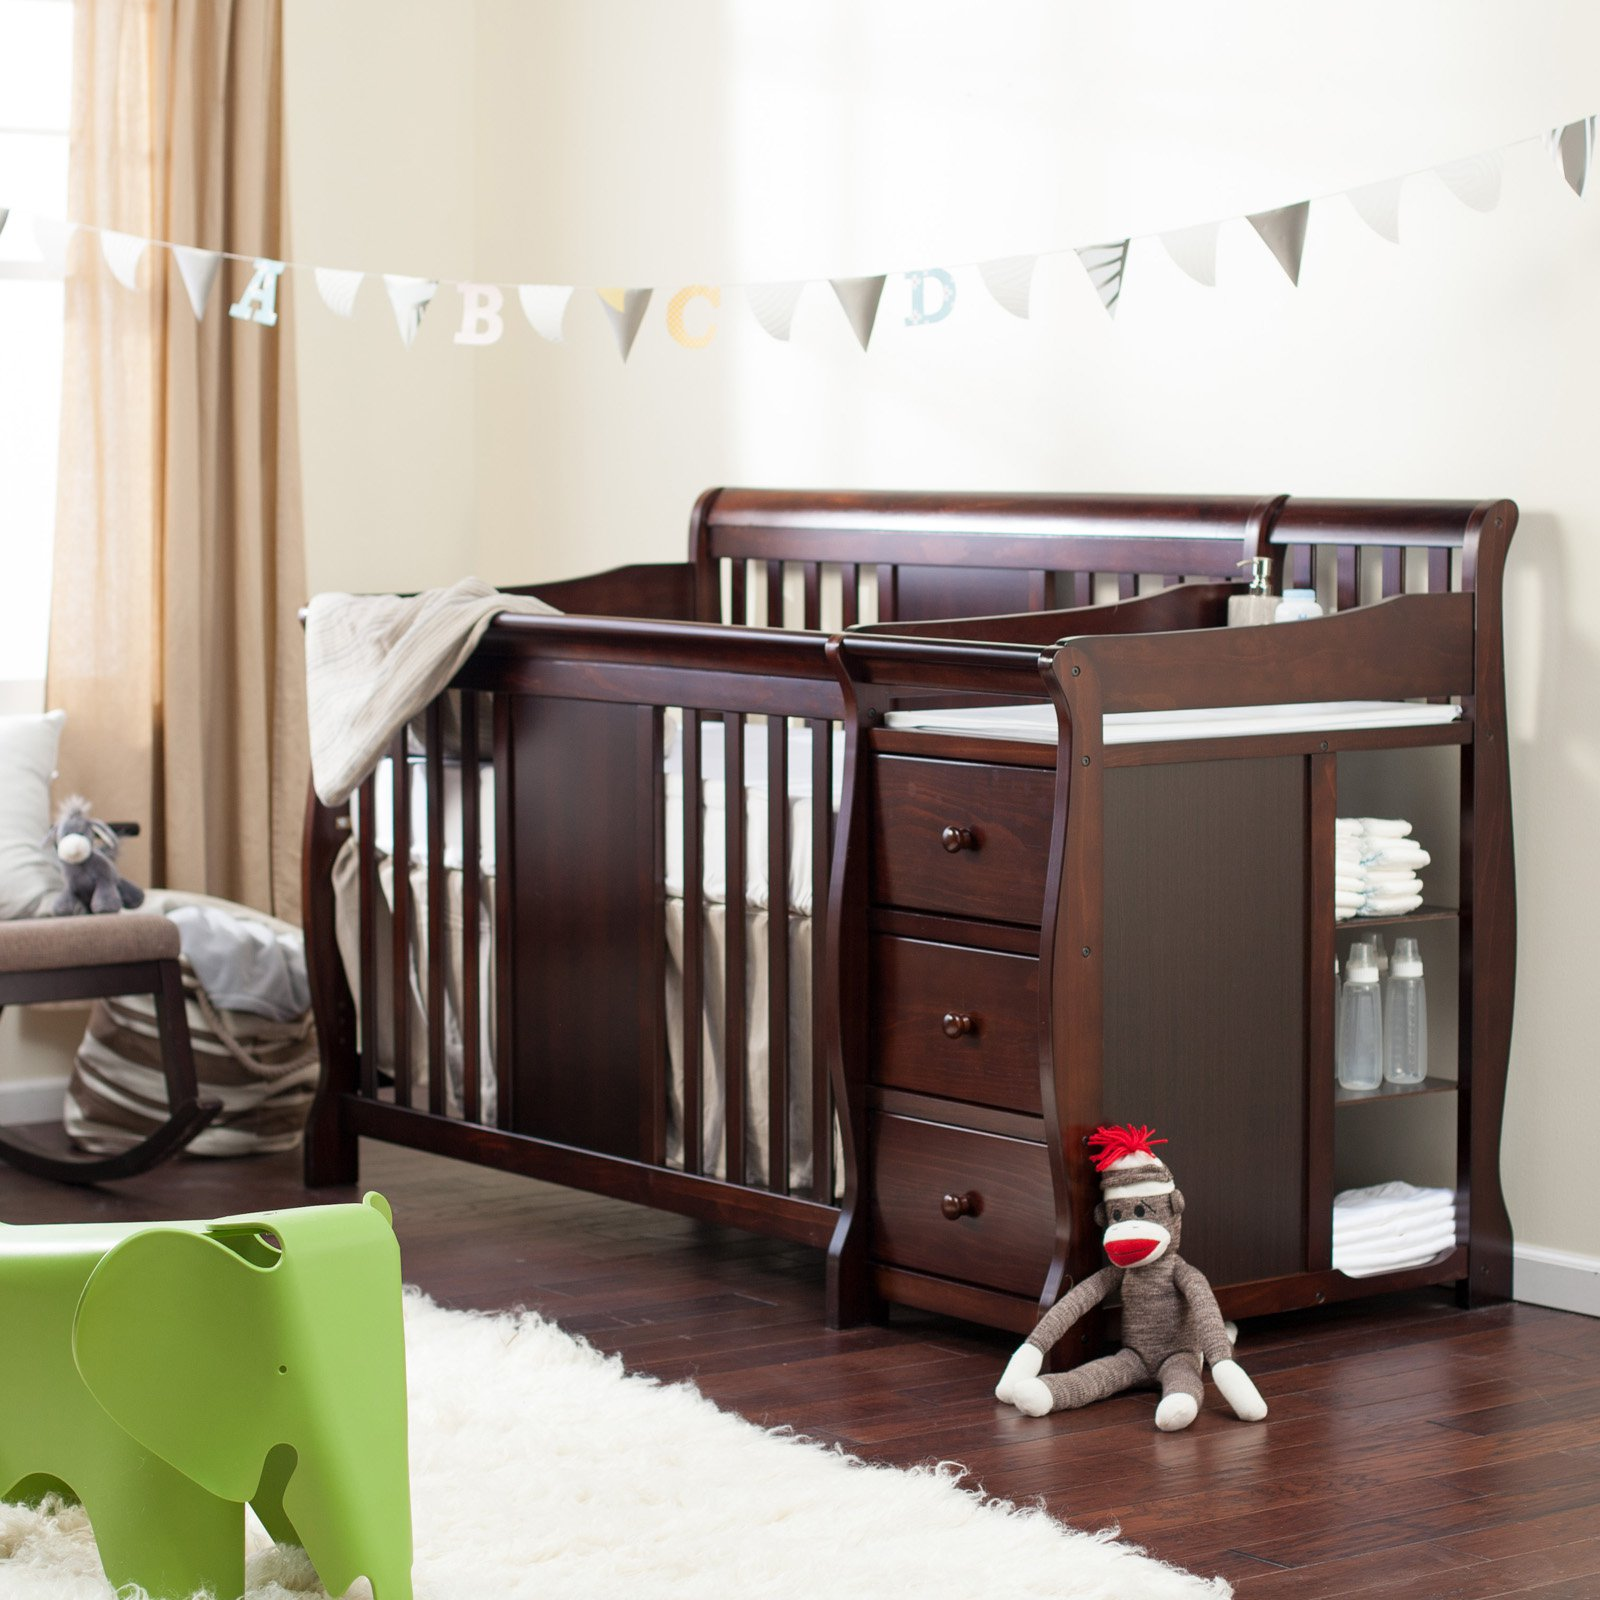 Newborn Crib | Baby Crib with Changing Table Attached | Cheap Cribs